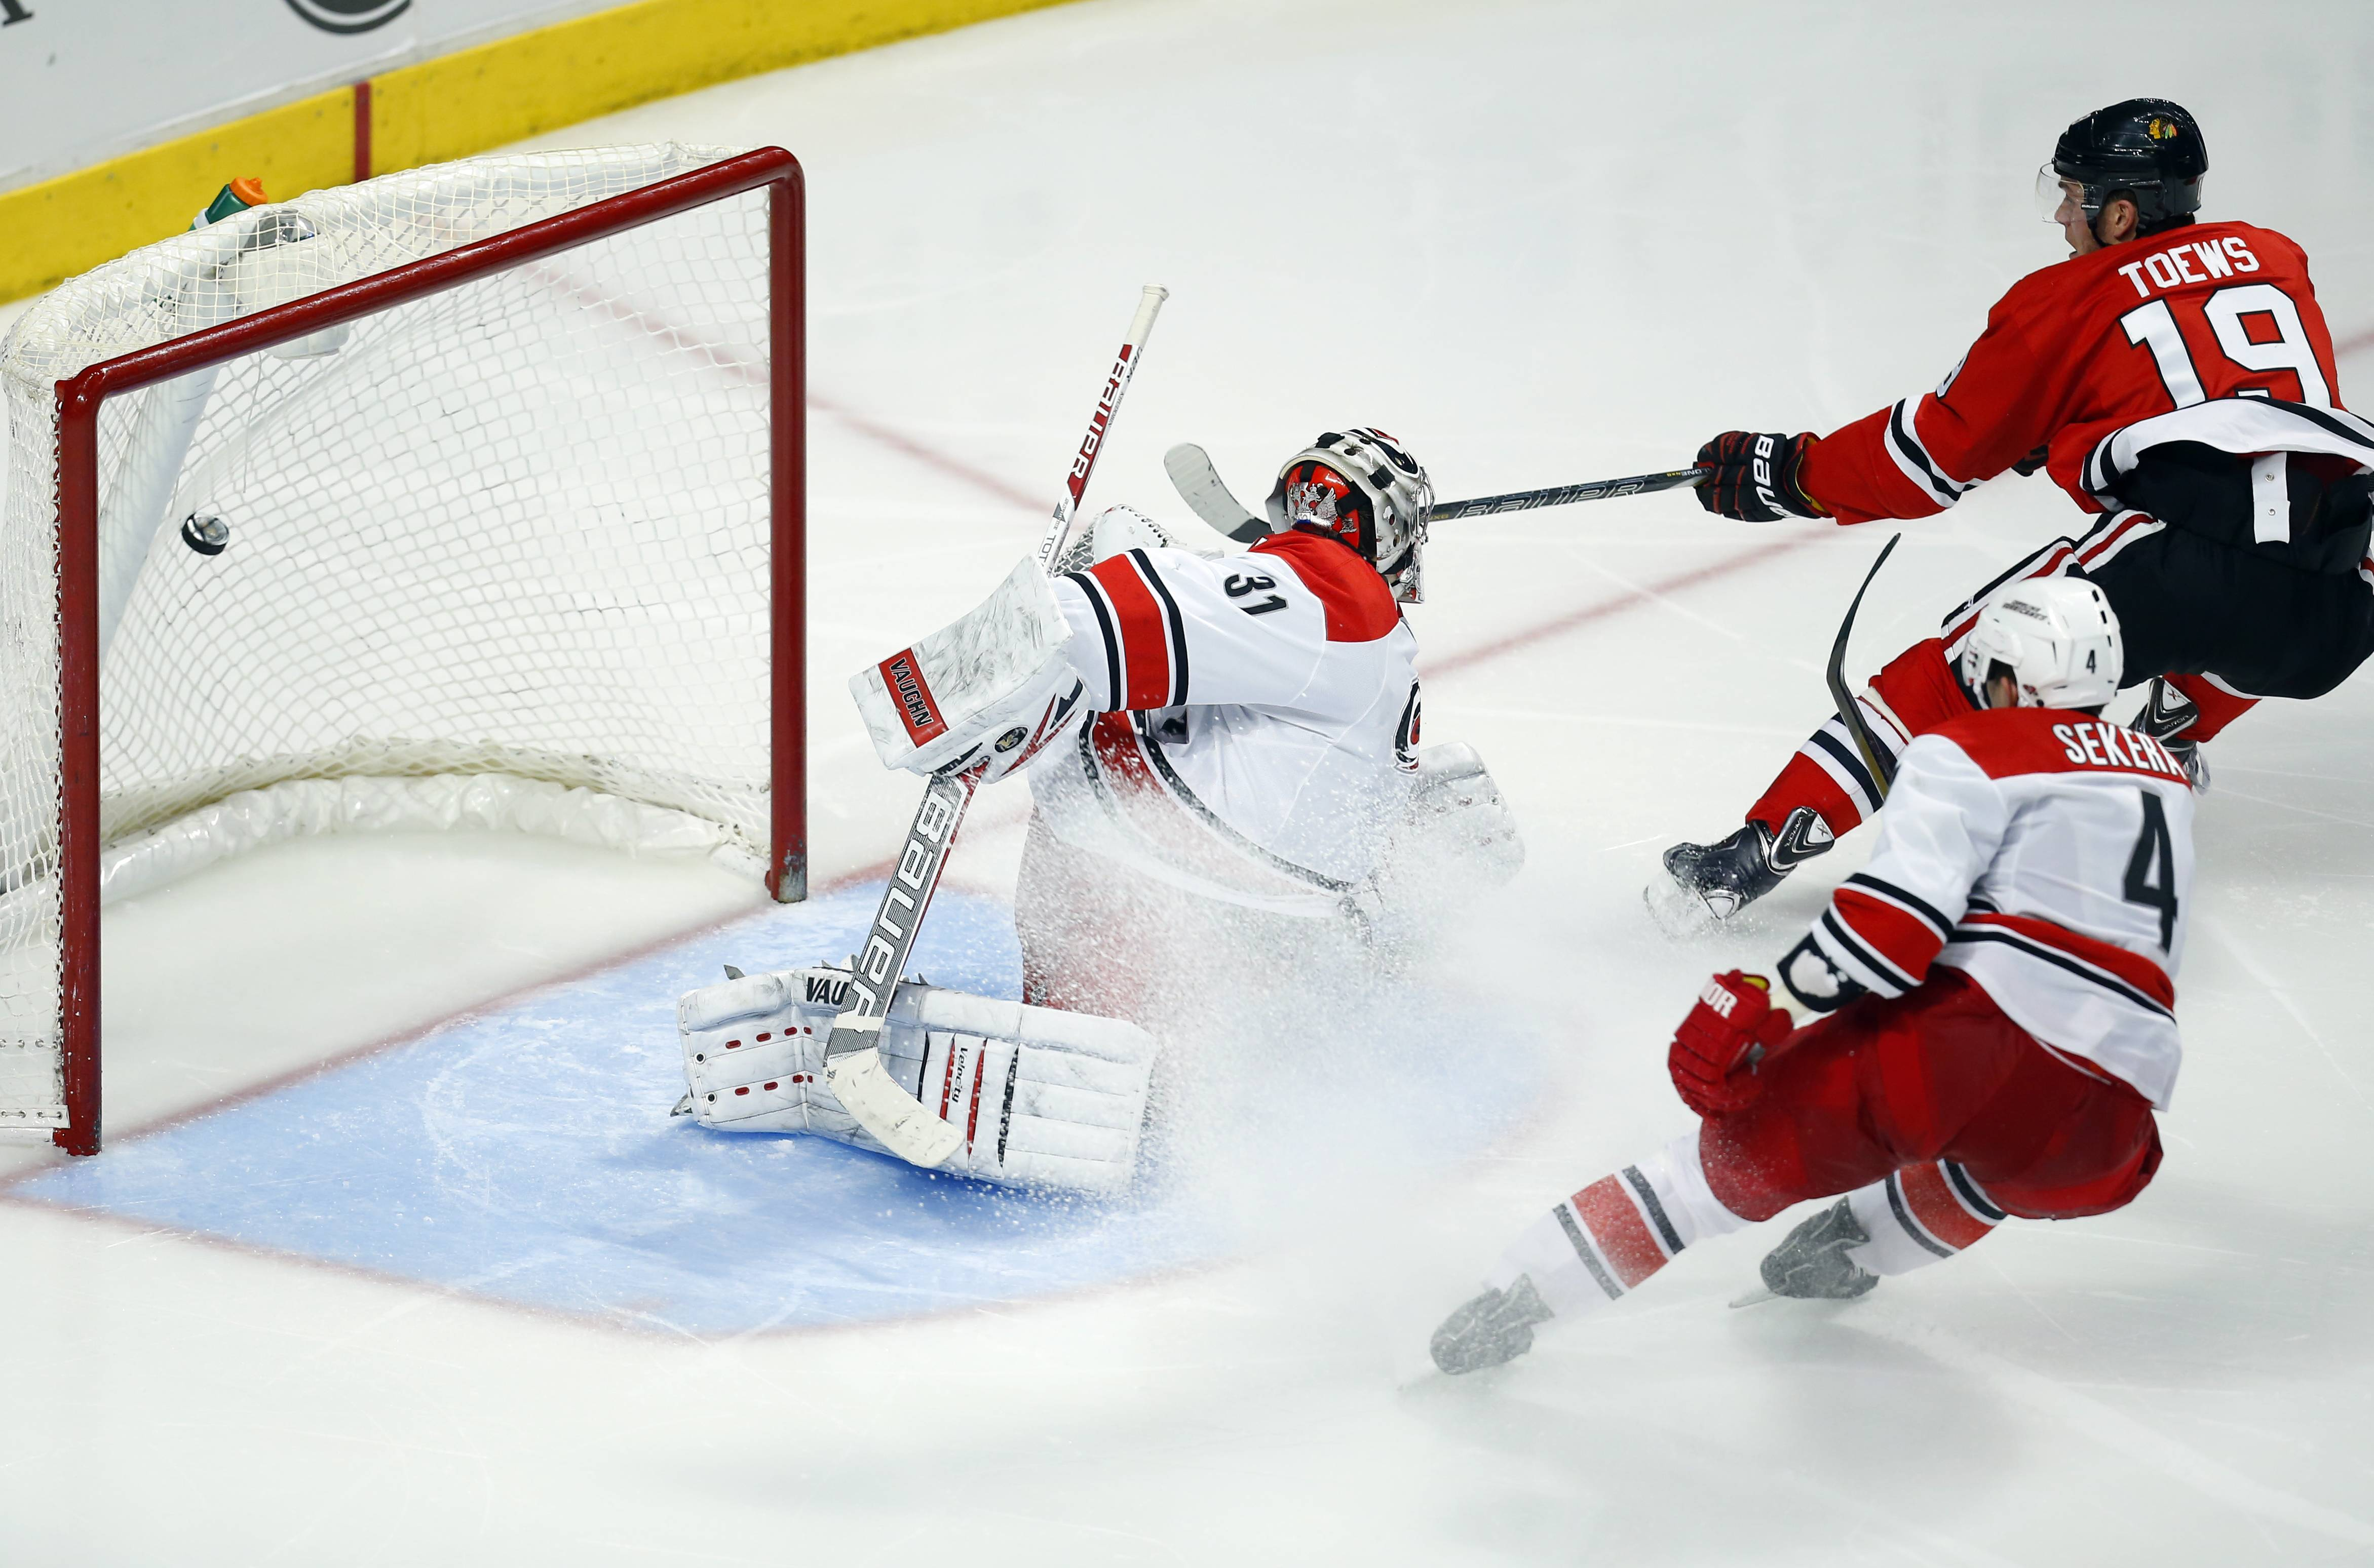 Chicago Blackhawks center Jonathan Toews (19) gets the puck past Carolina Hurricanes goalie Anton Khudobin (31) for a goal as Hurricanes defenseman Andrej Sekera (4) trails the play during the third period of an NHL hockey game in Chicago, Friday, March 21, 2014. The Blackhawks won 3-2.